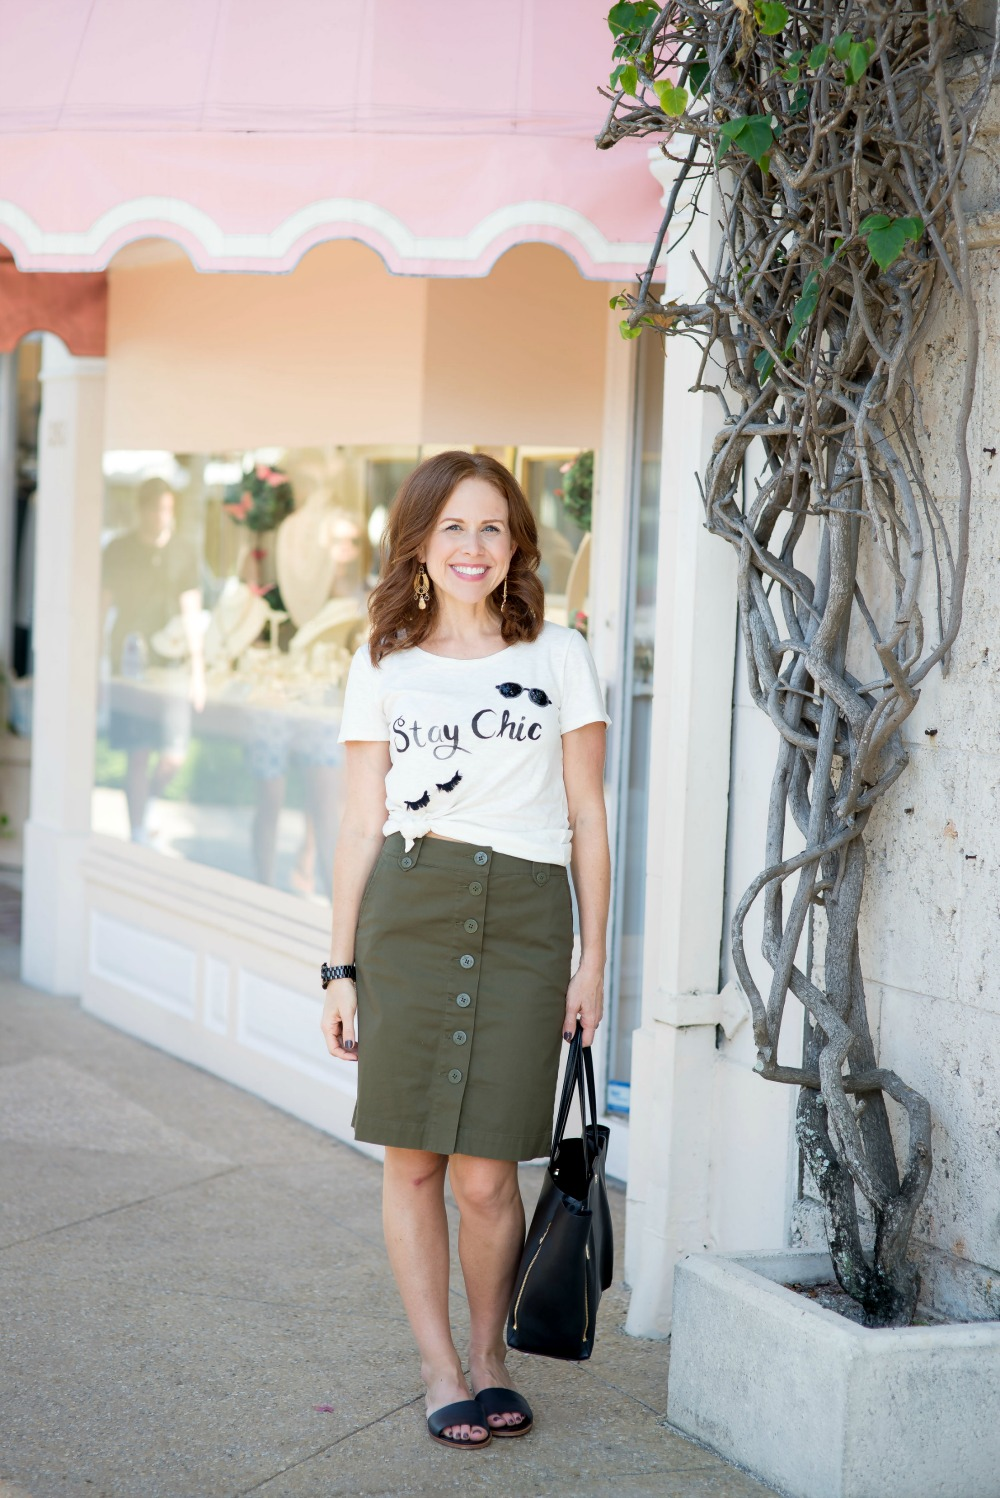 Easy fall style outfit with a tee and pencil skirt // the modern savvy